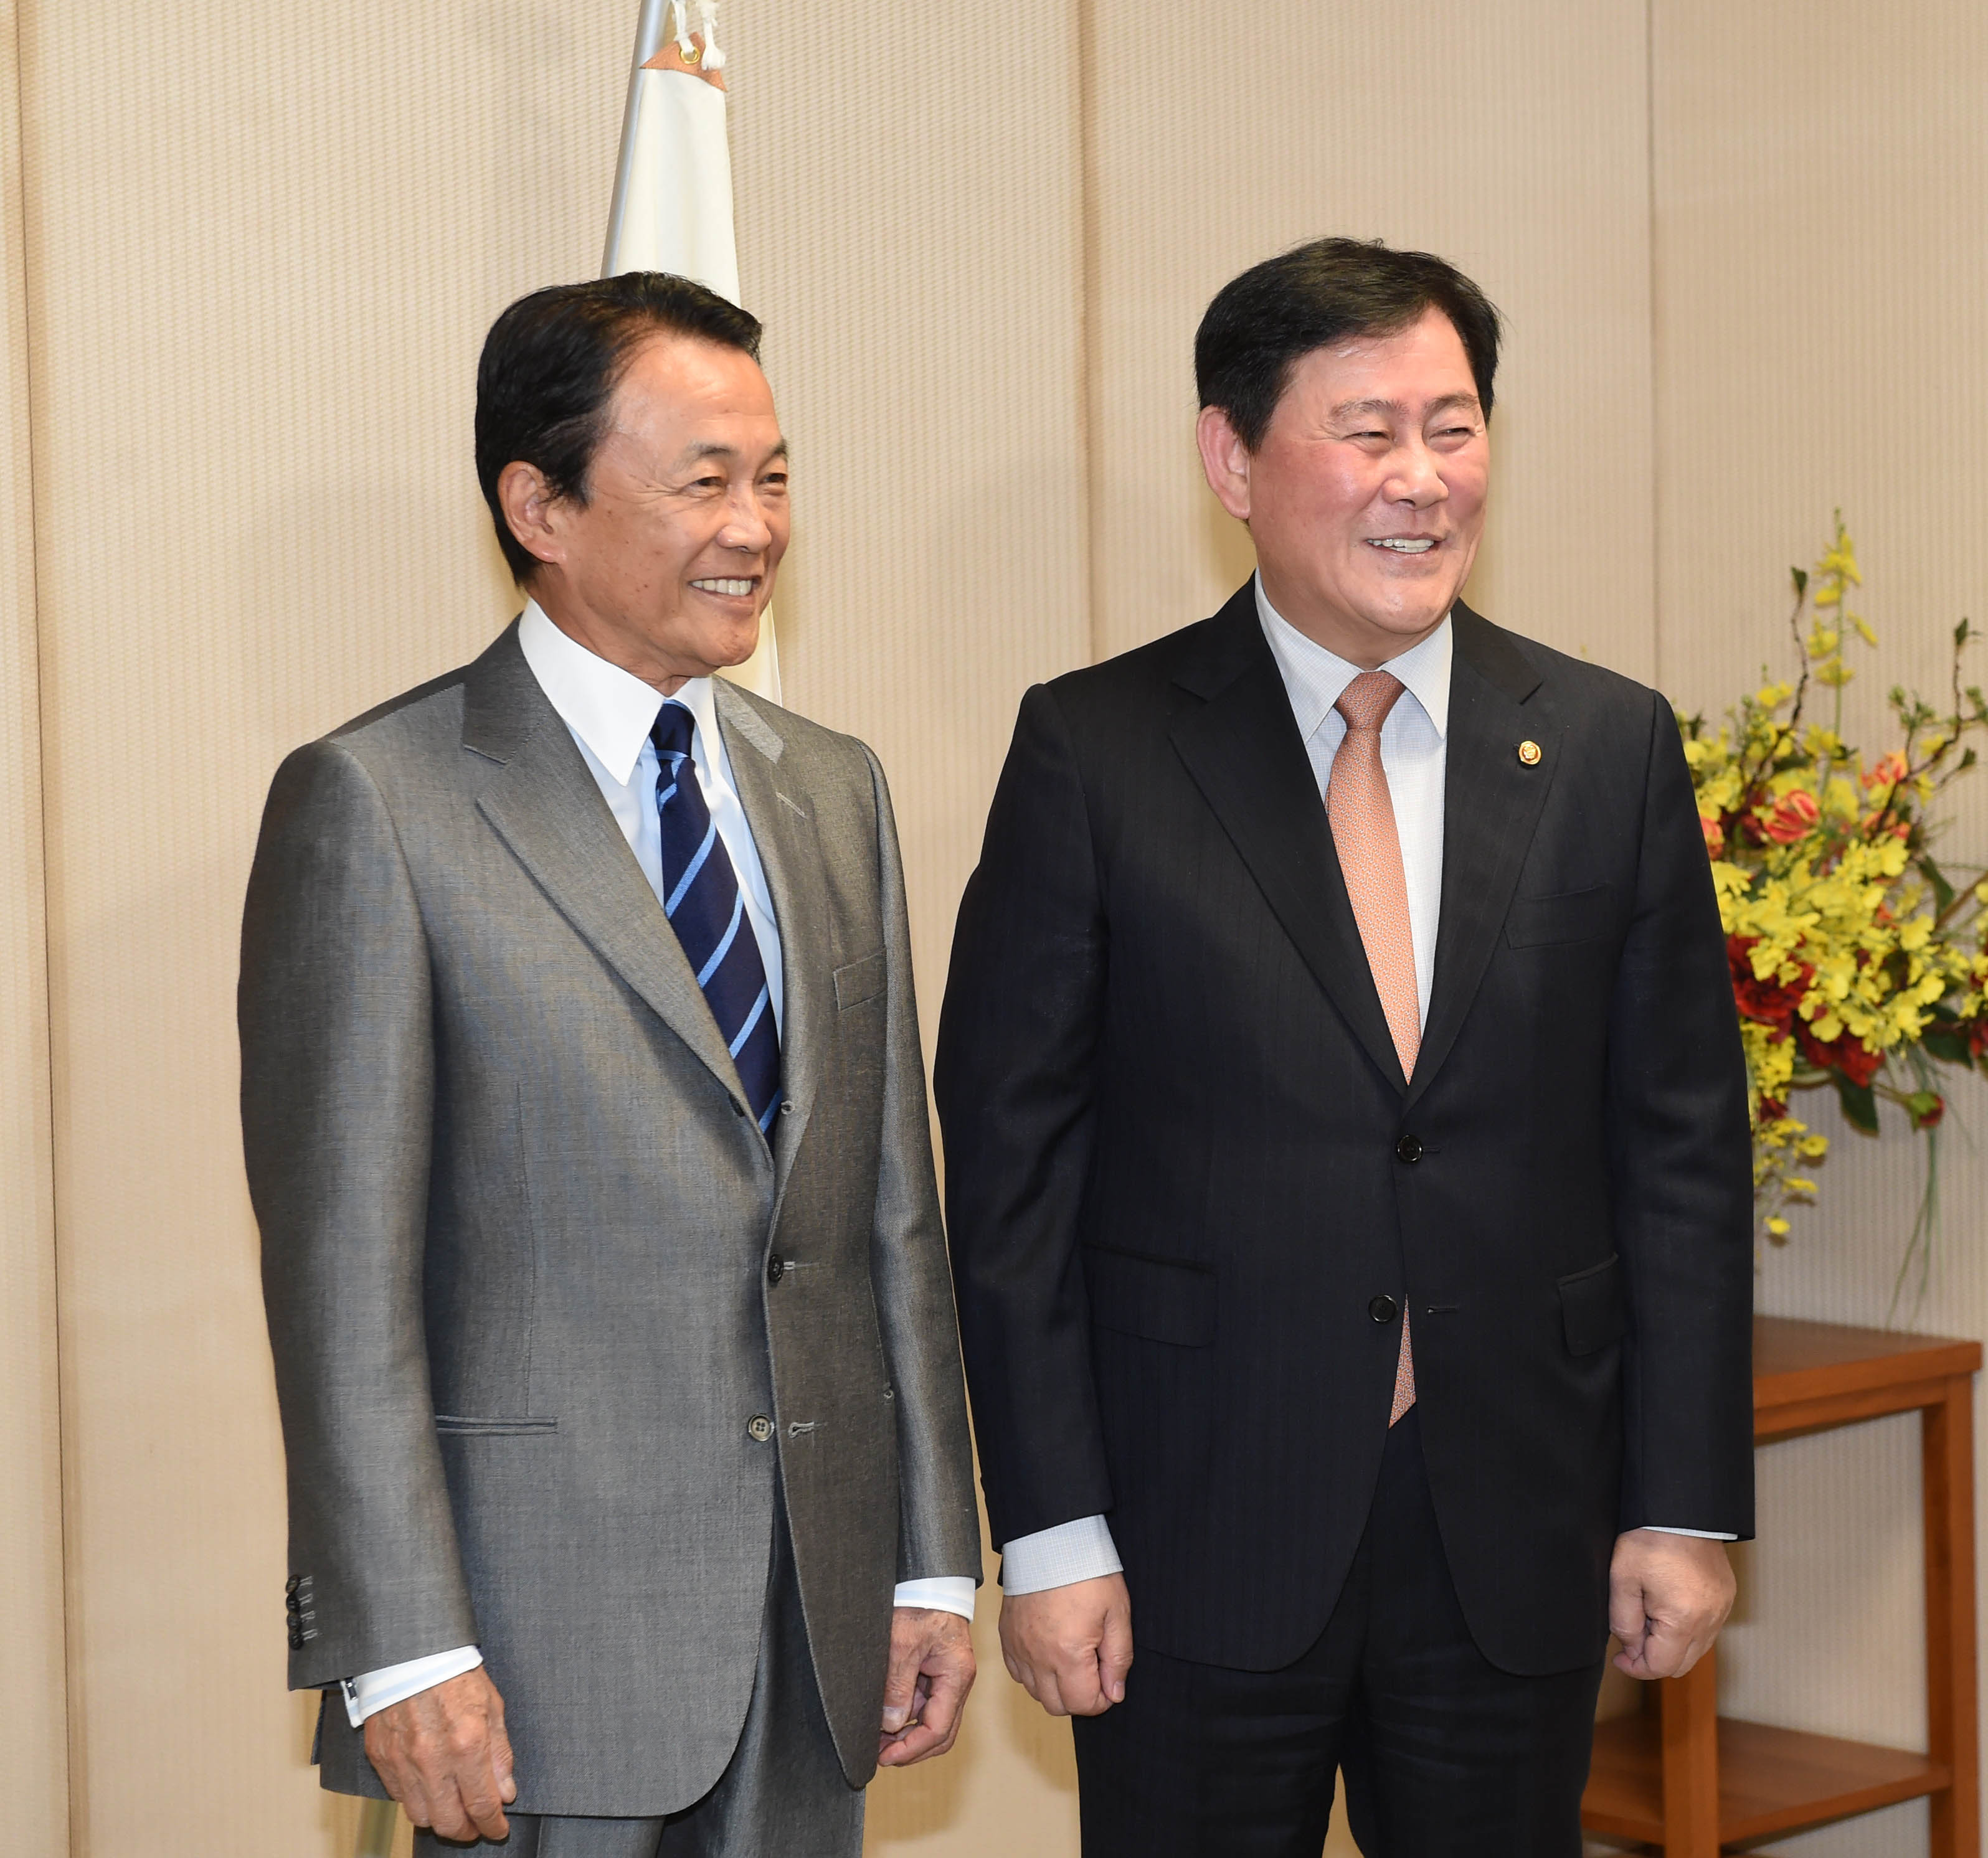 Deputy Prime Minister Choi meets with Japanese Deputy Prime Minister Aso Taro